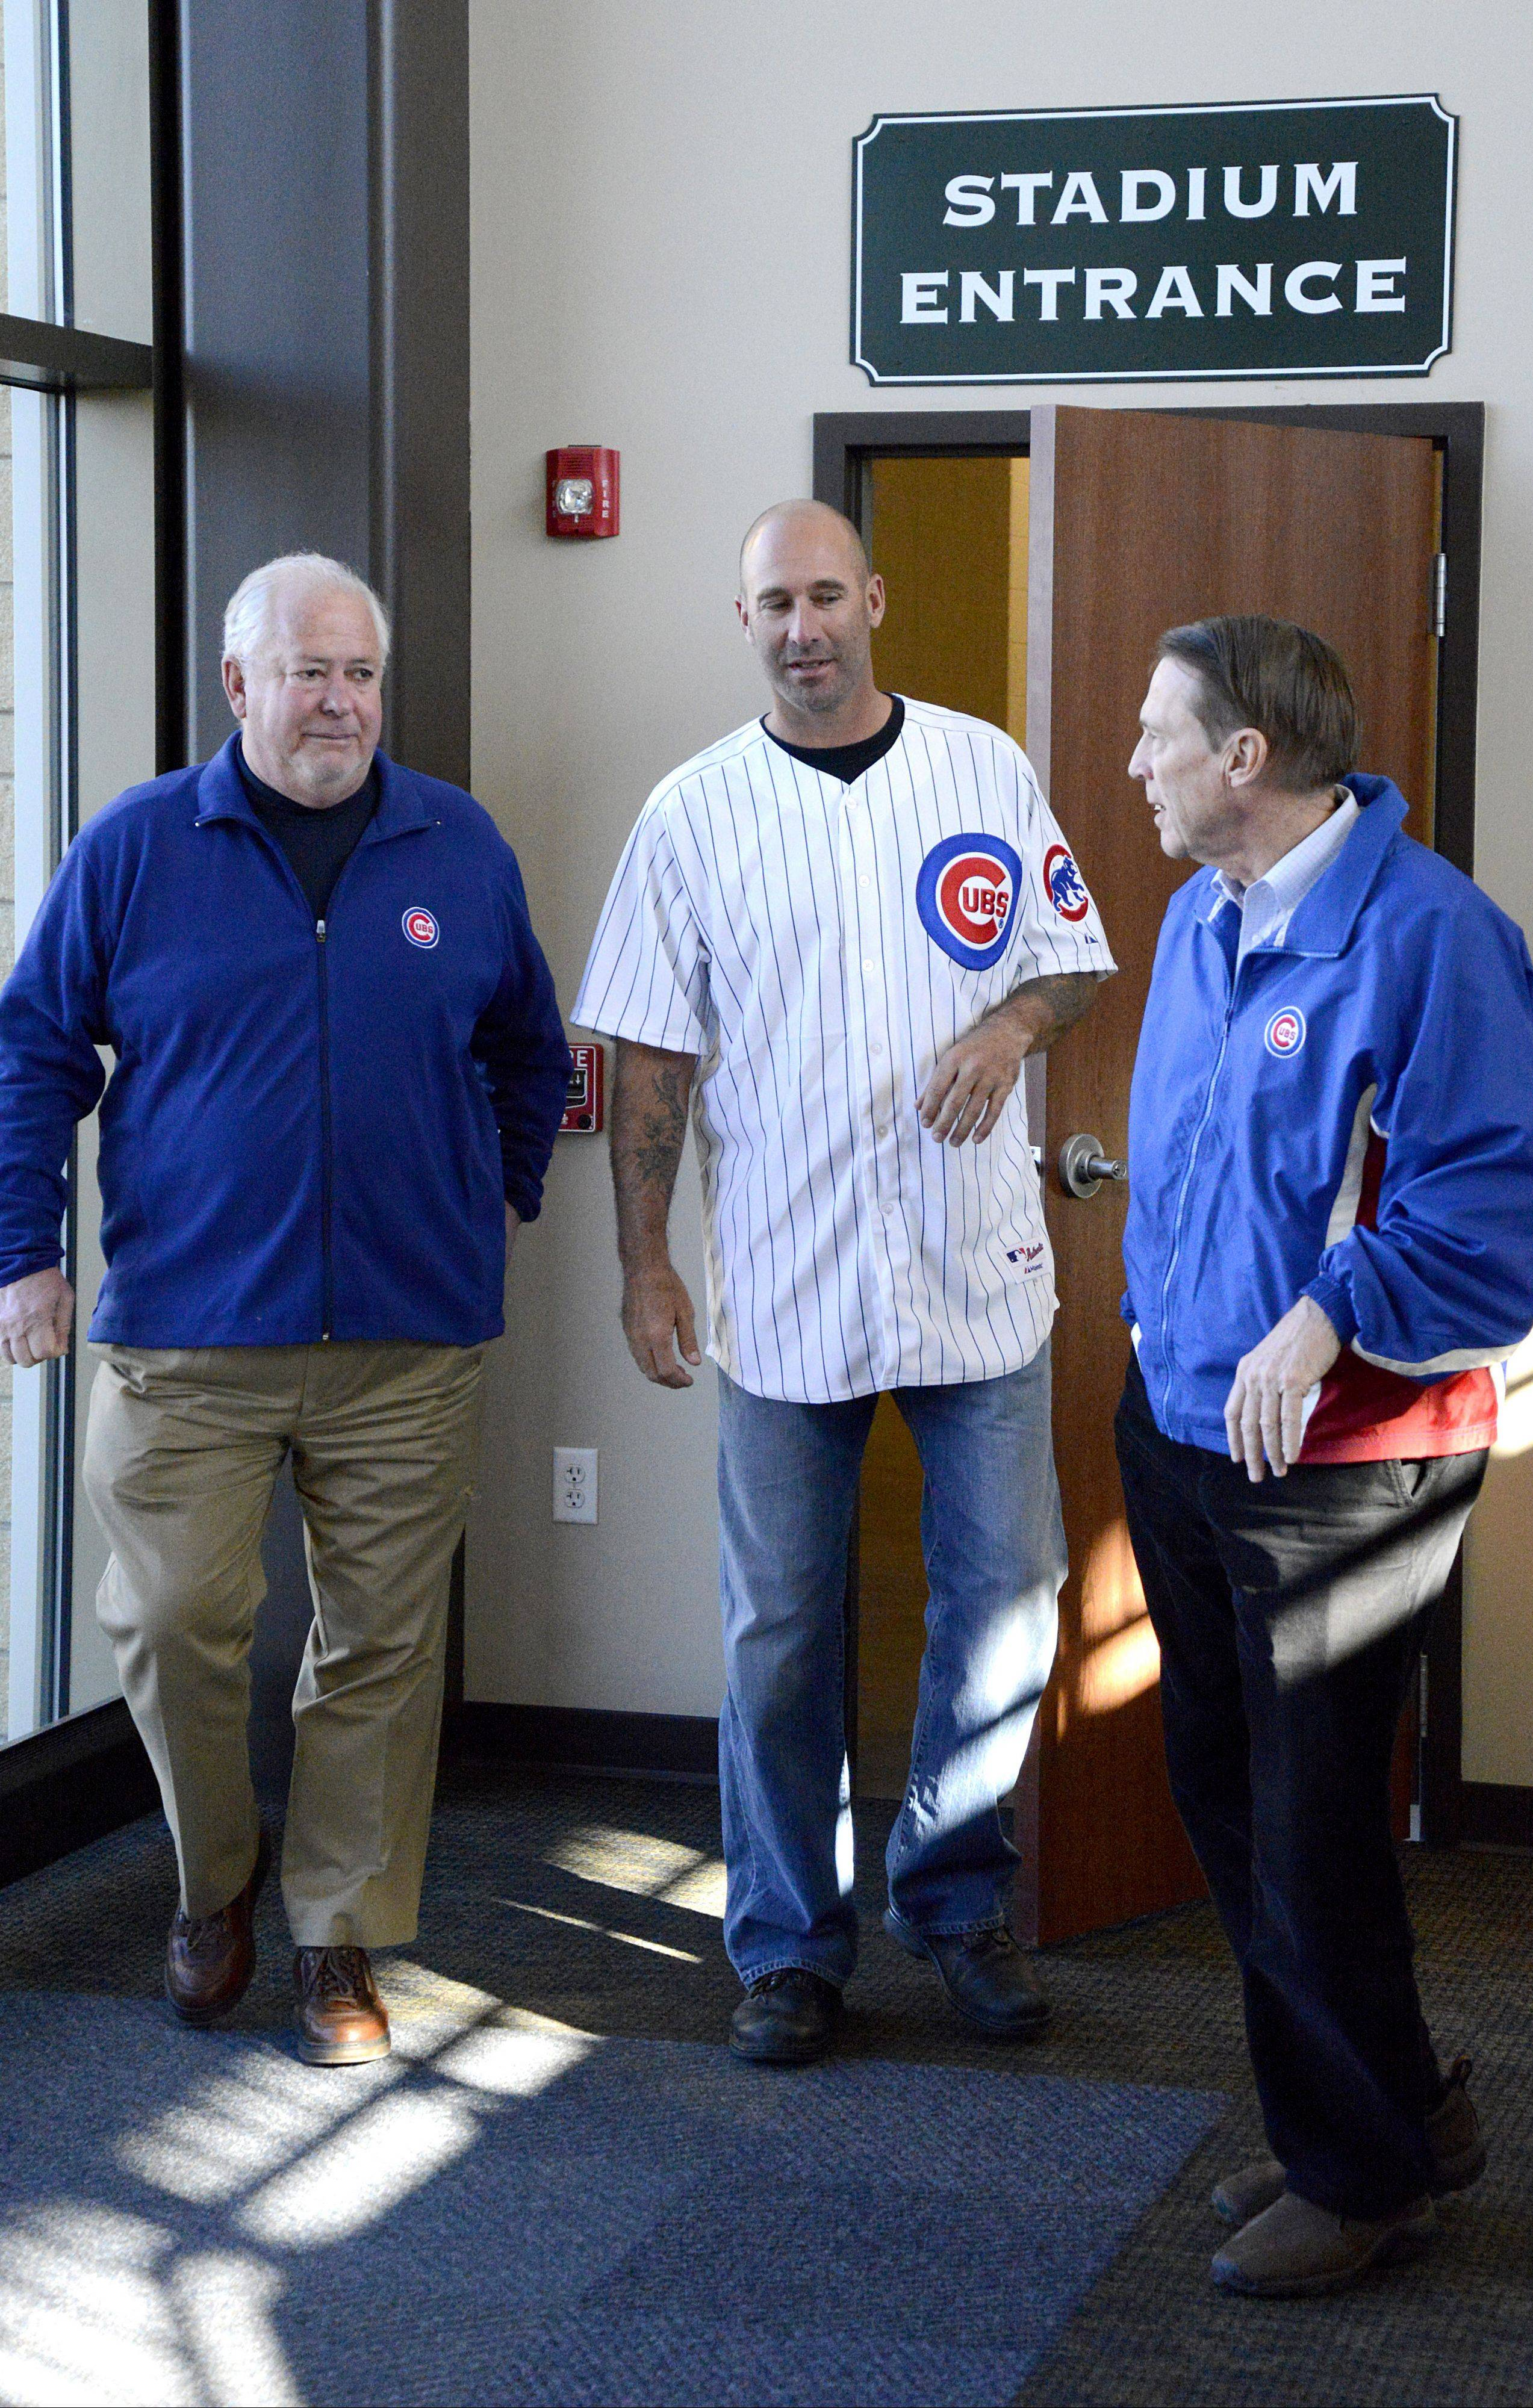 Kane County Cougars Managing Partners Mike Woleben, left, and Mike Murtaugh, right, gave Cubs manager Dave Sveum a quick peek at the stadium.